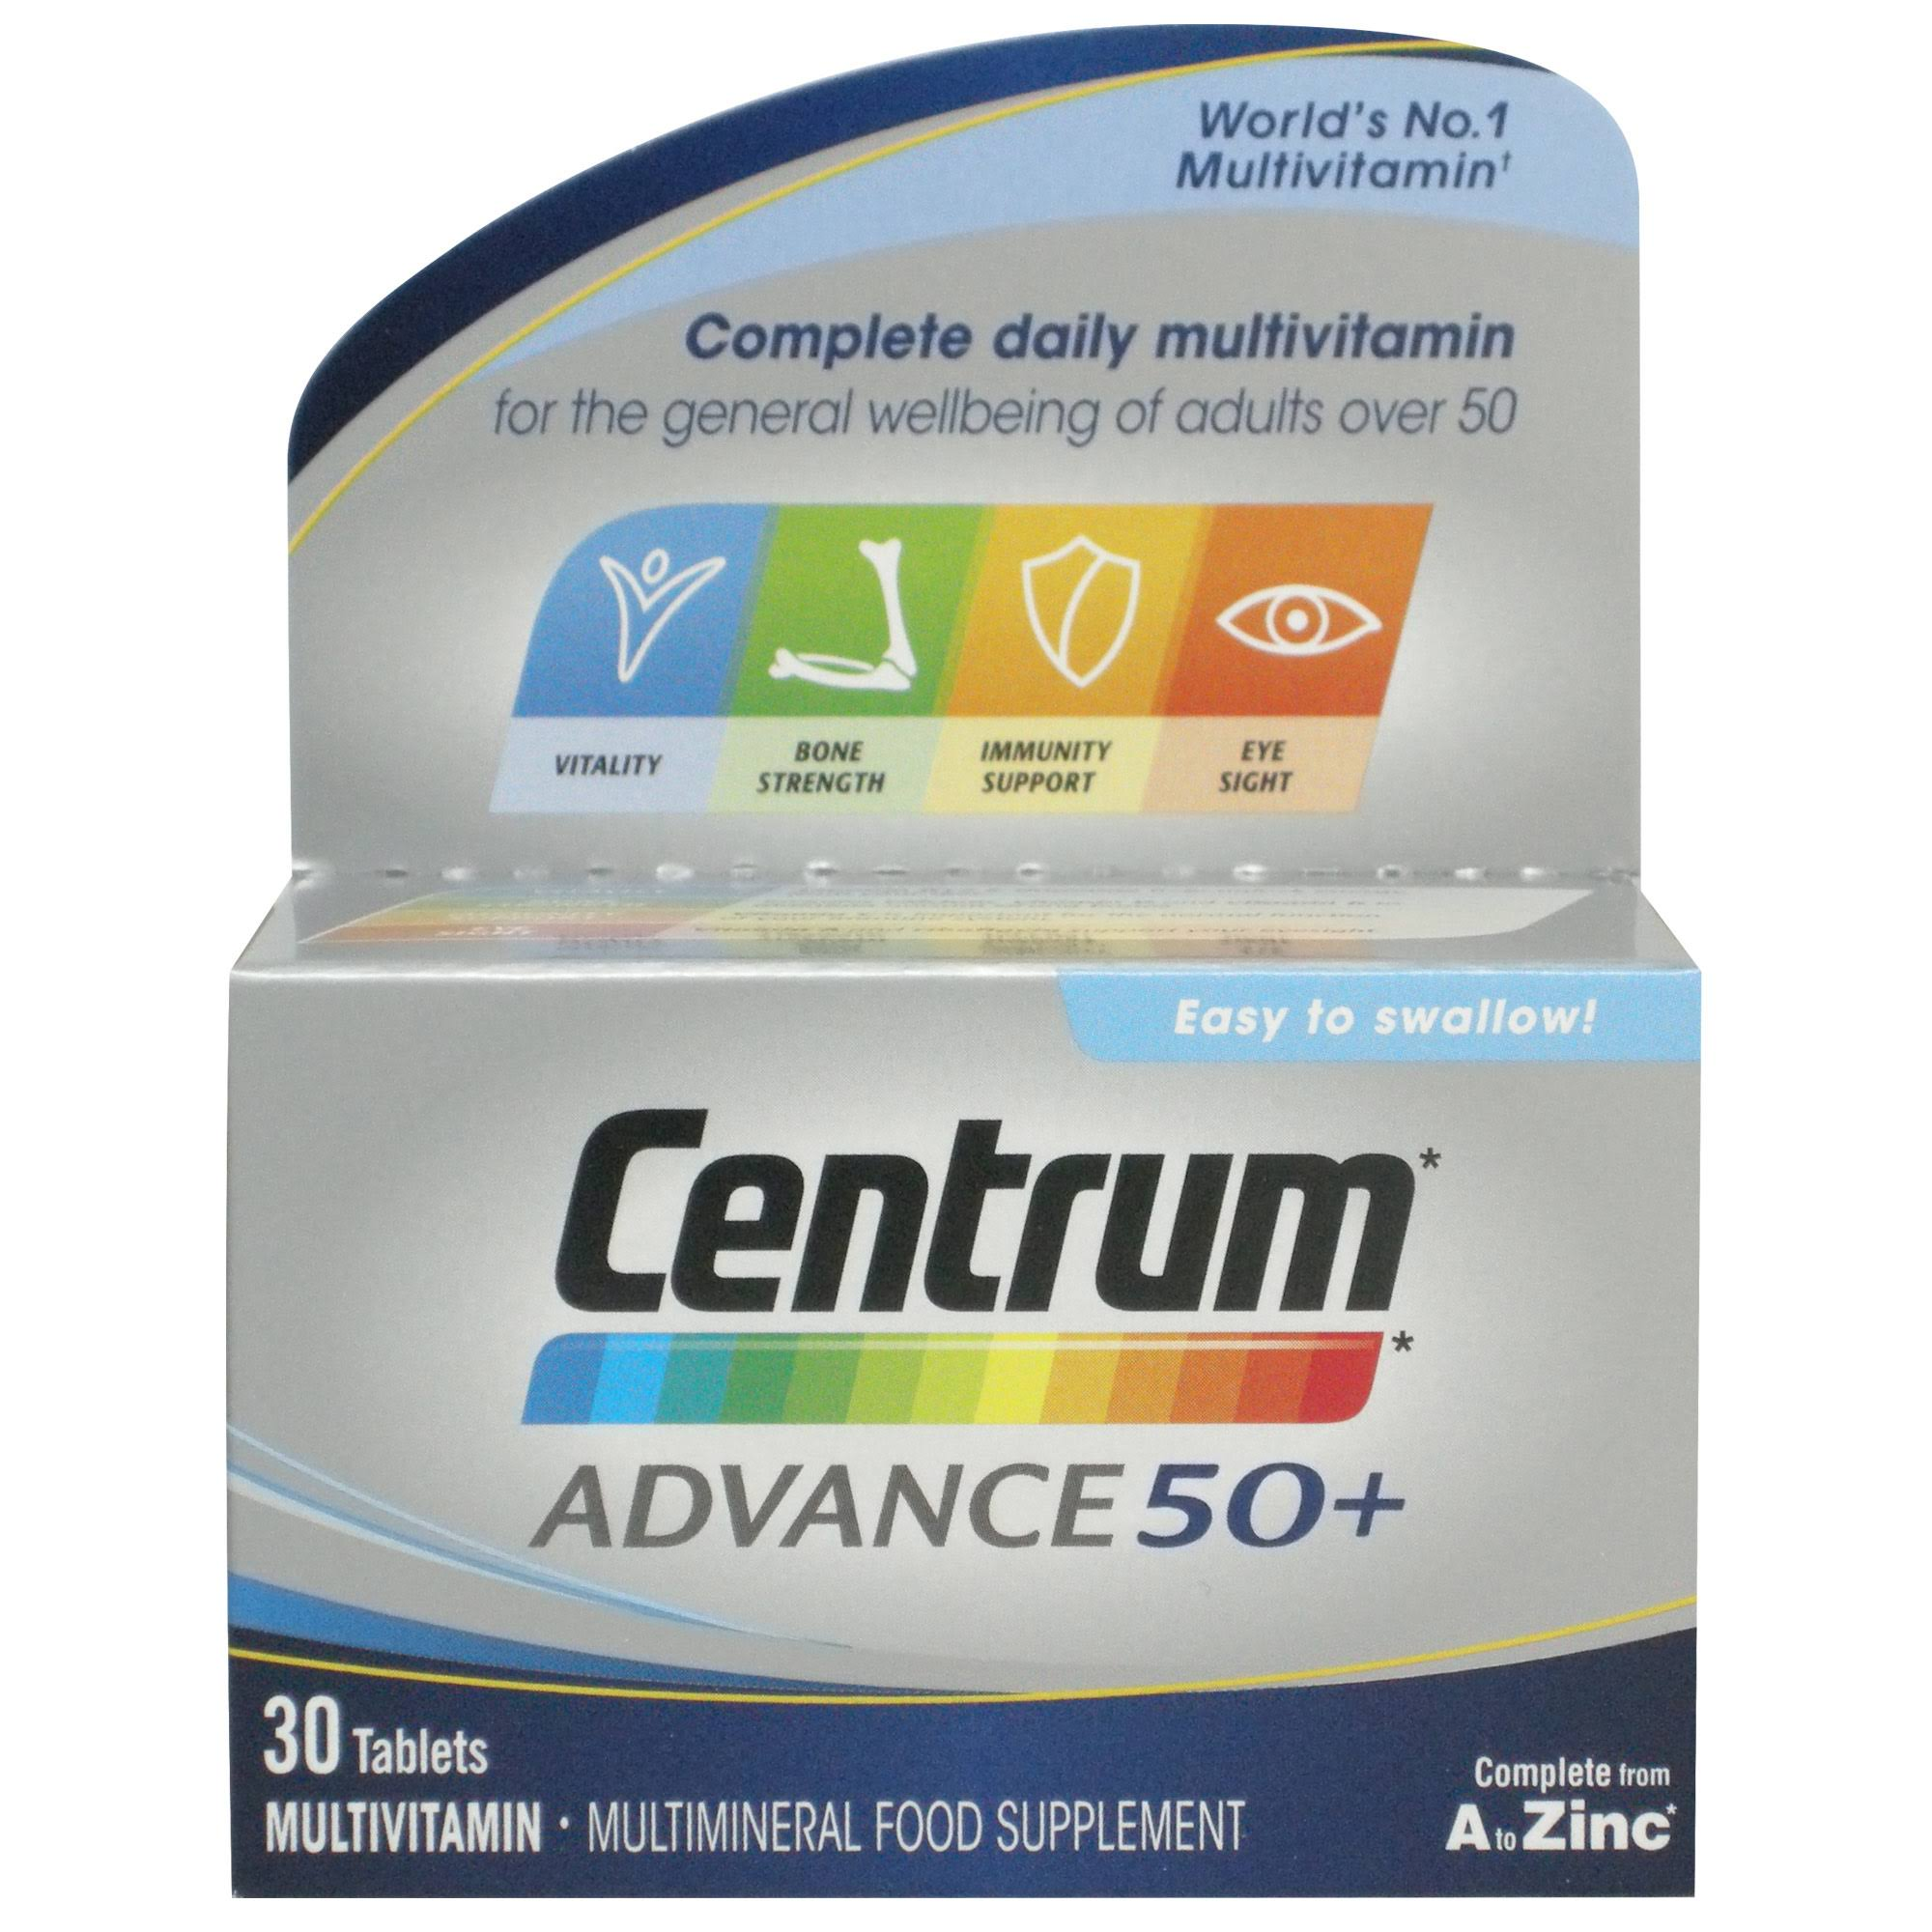 Centrum Advanced 50 Plus Multivitamin - 30 Tablets